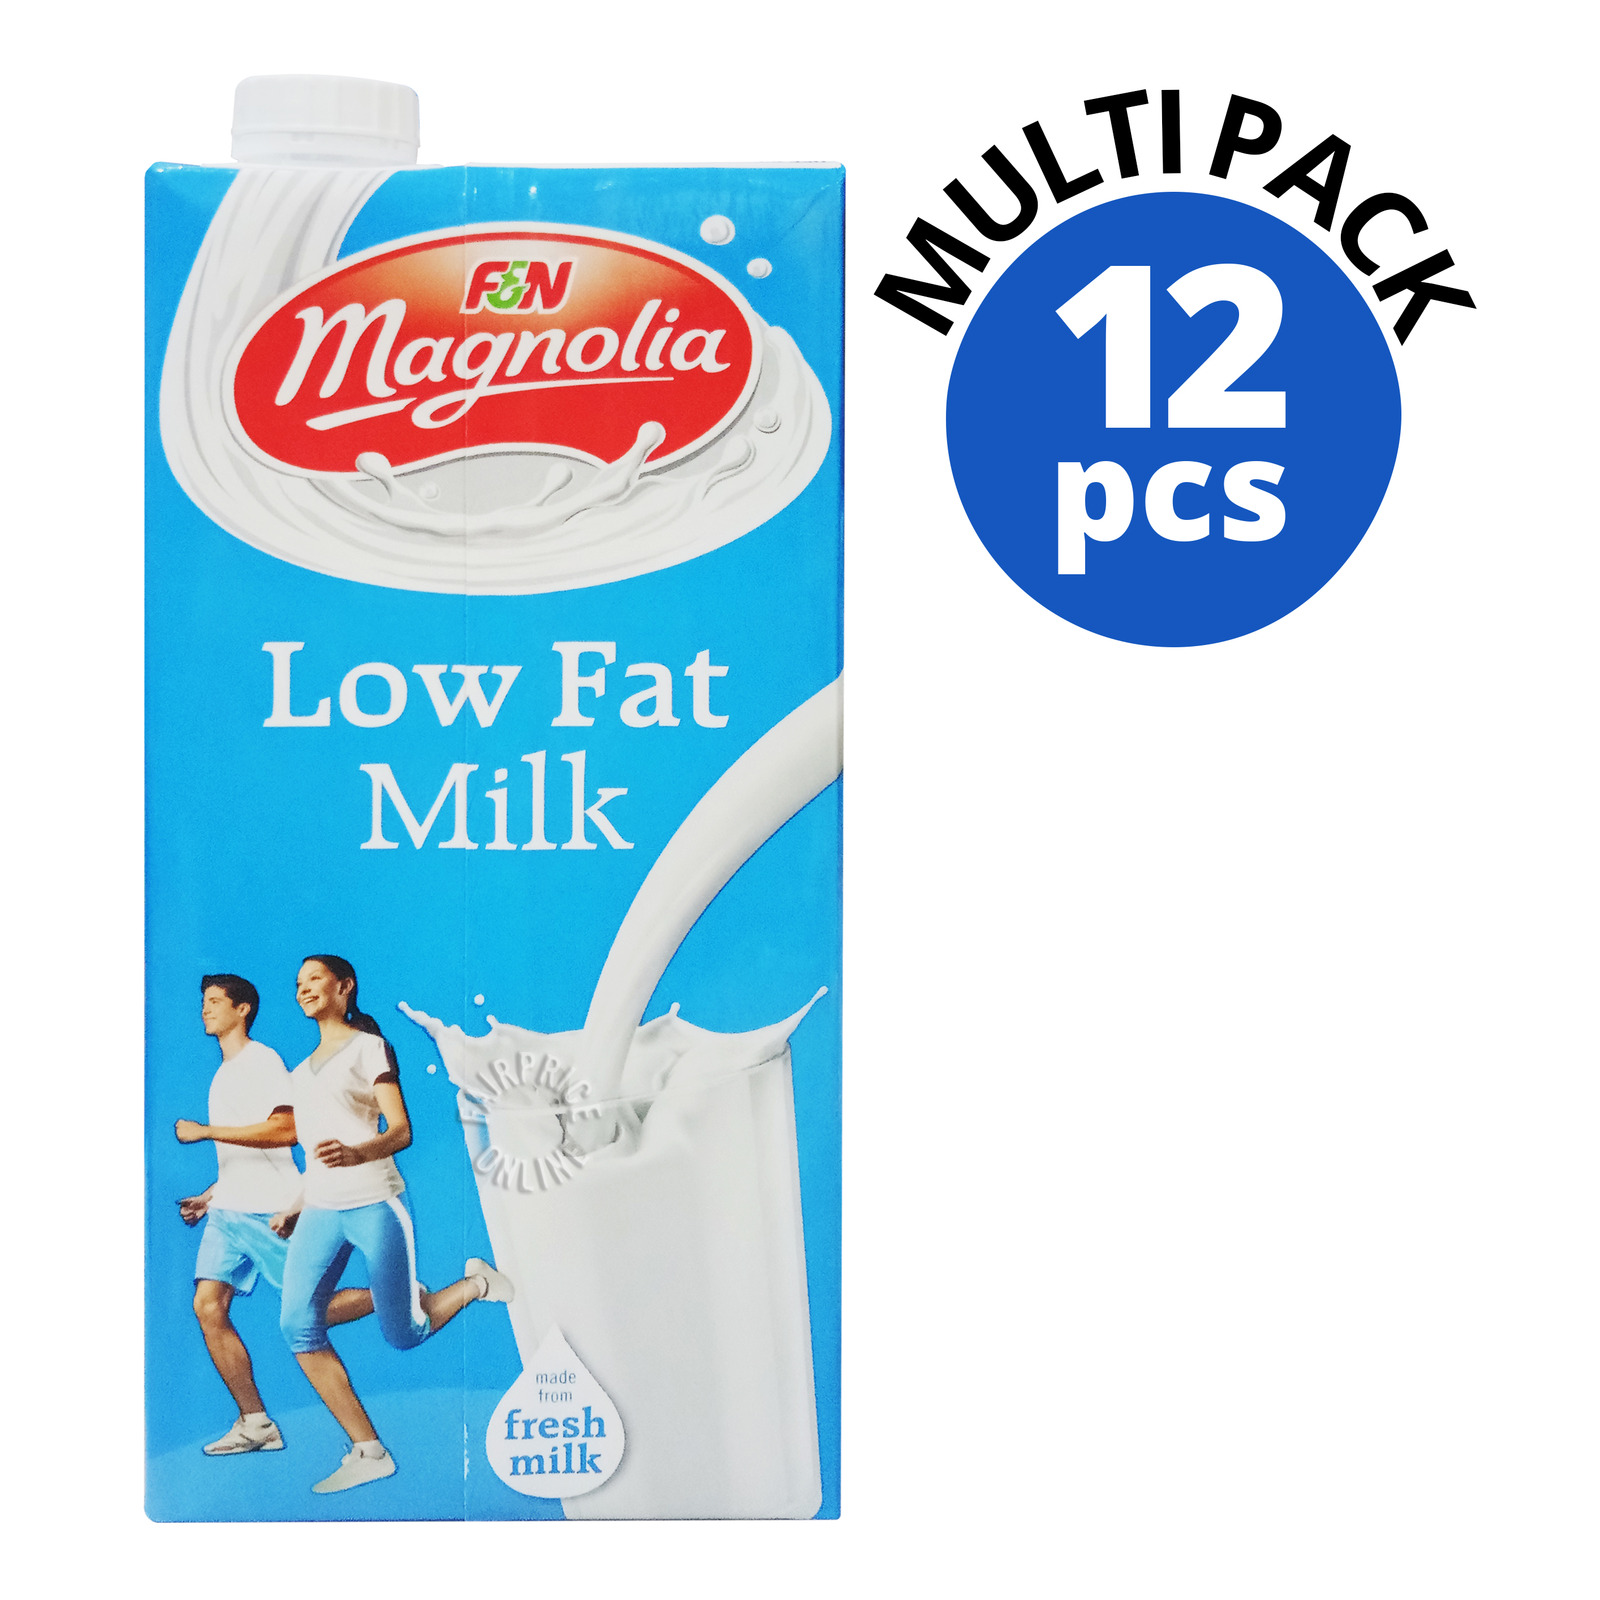 F&N Magnolia UHT Milk - Higher Calcium Low Fat